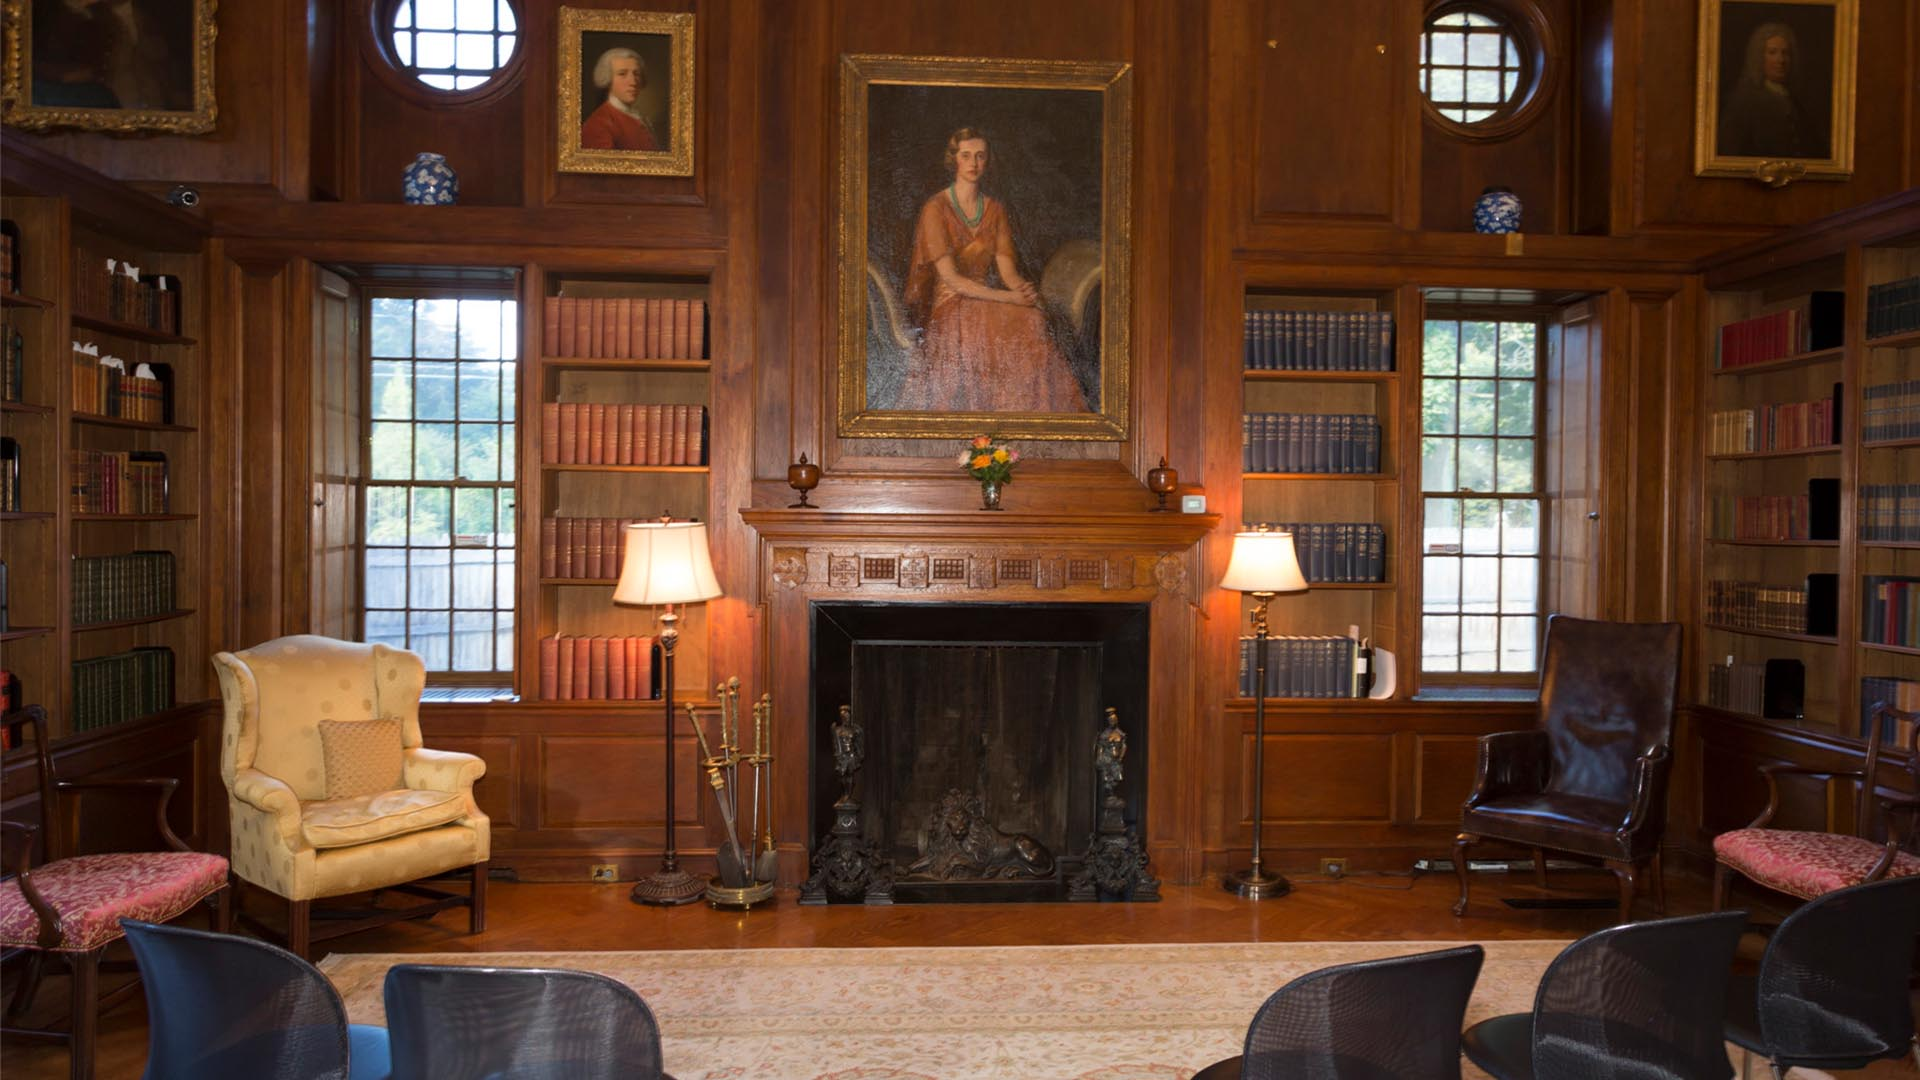 A photo of the inside of the Lewis Walpole Library.